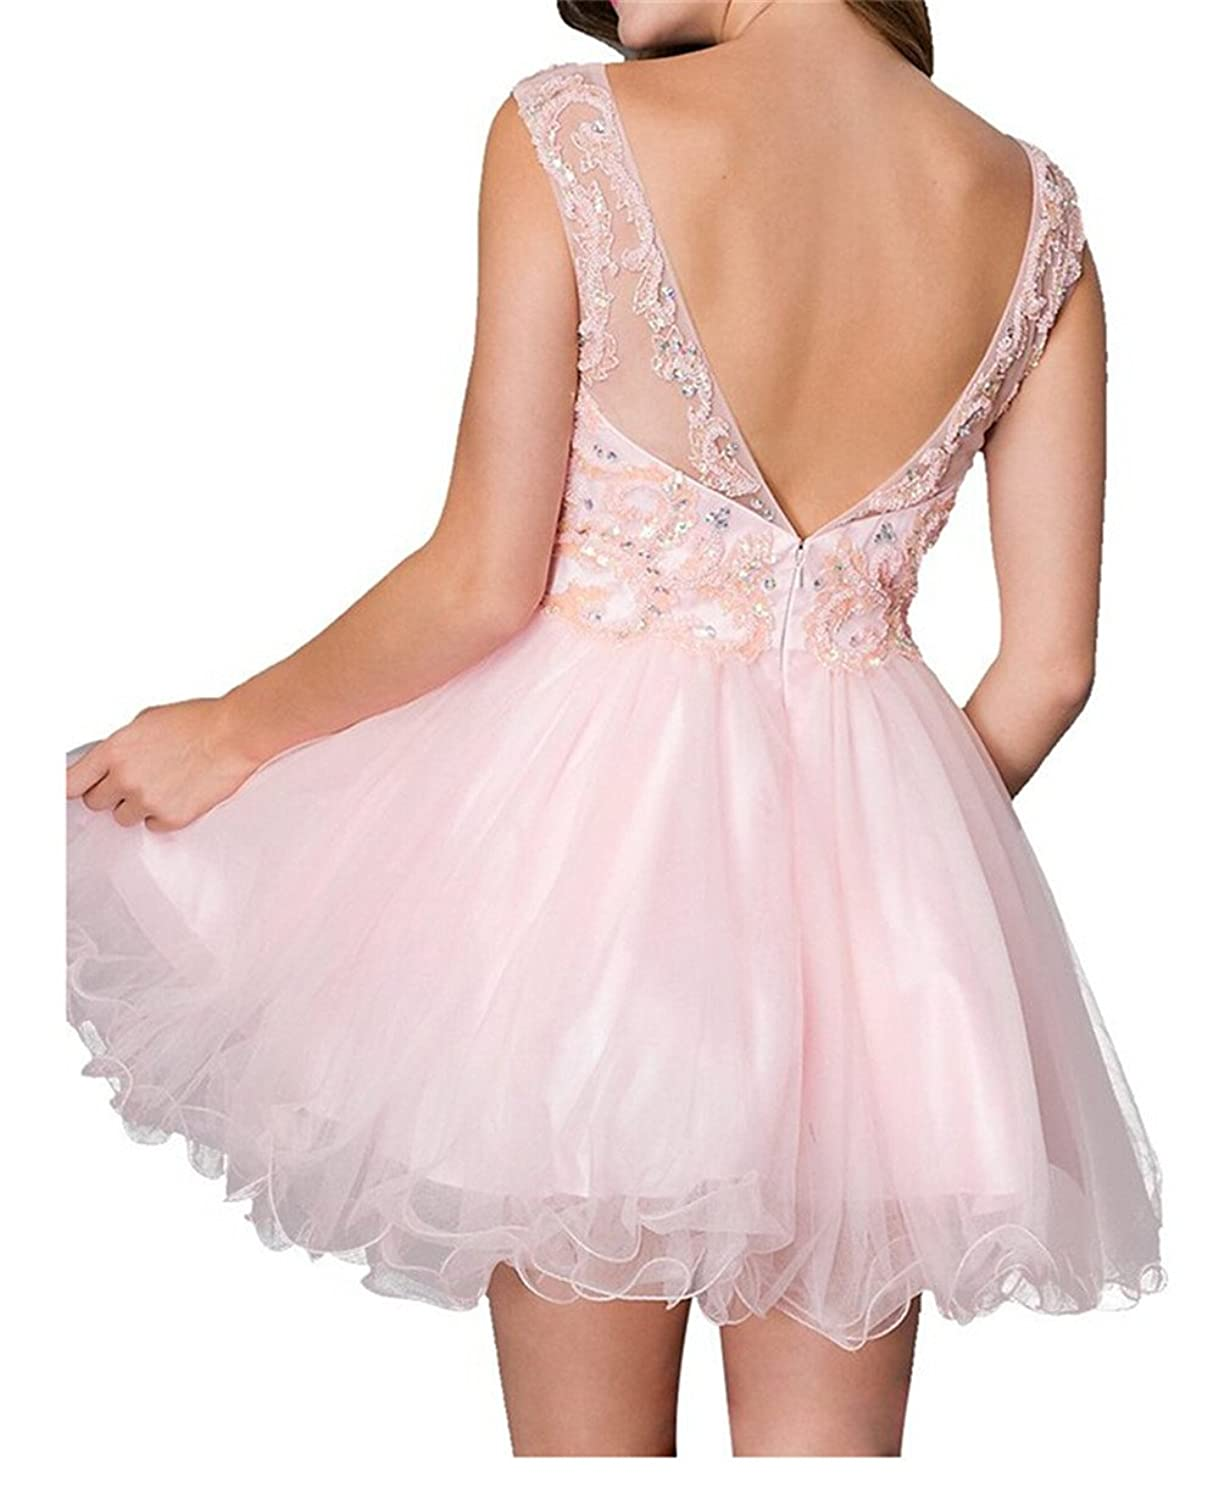 AngelDragon Short Tulle Ball Gowns Appliques Beading Evening Party Prom Dress